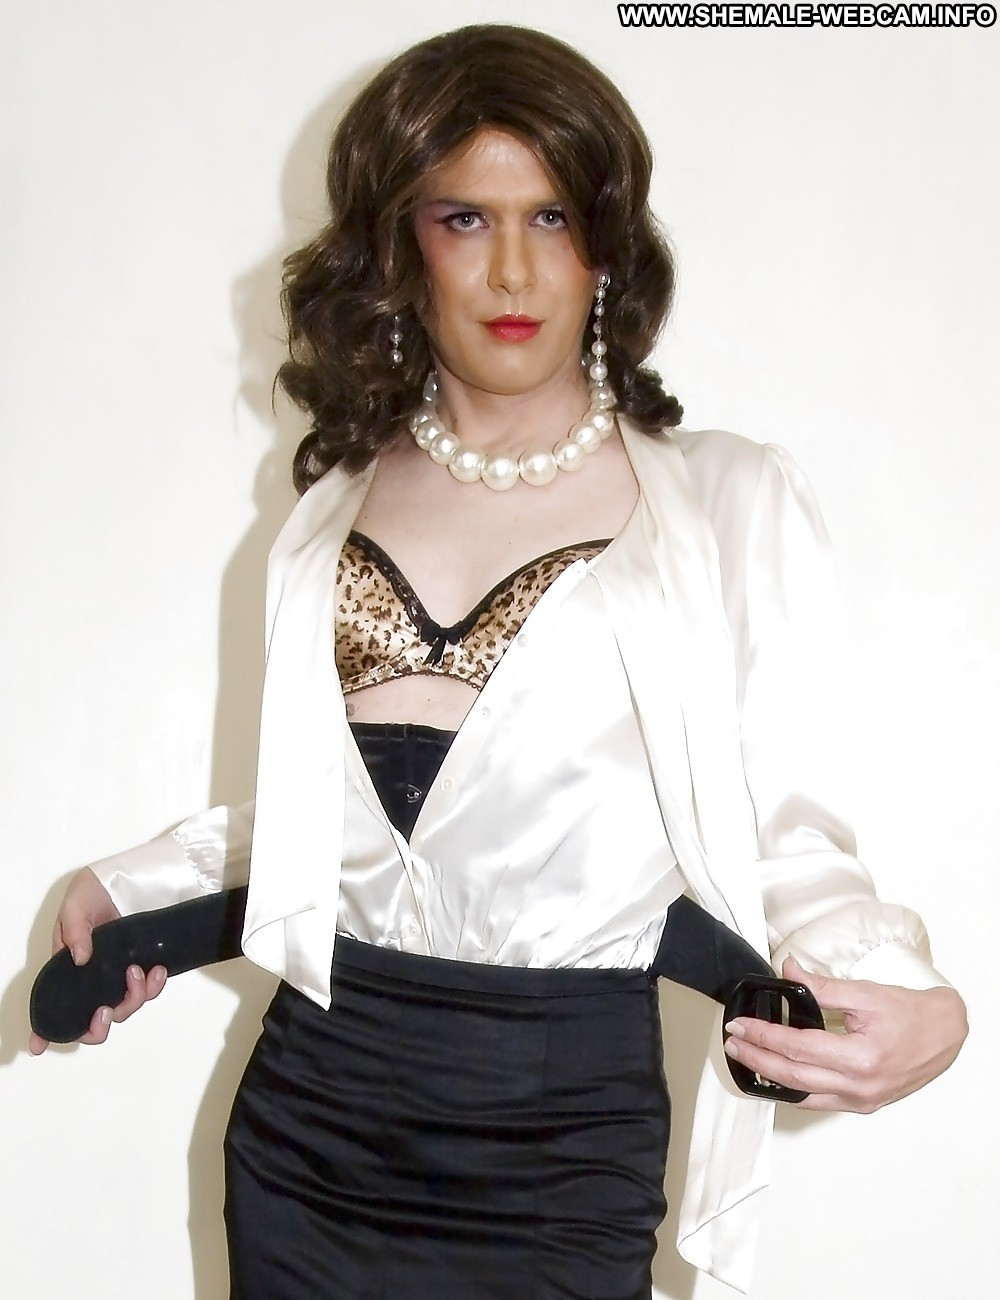 Maleah Private Pics Shemale Ladyboy Transexual Stockings